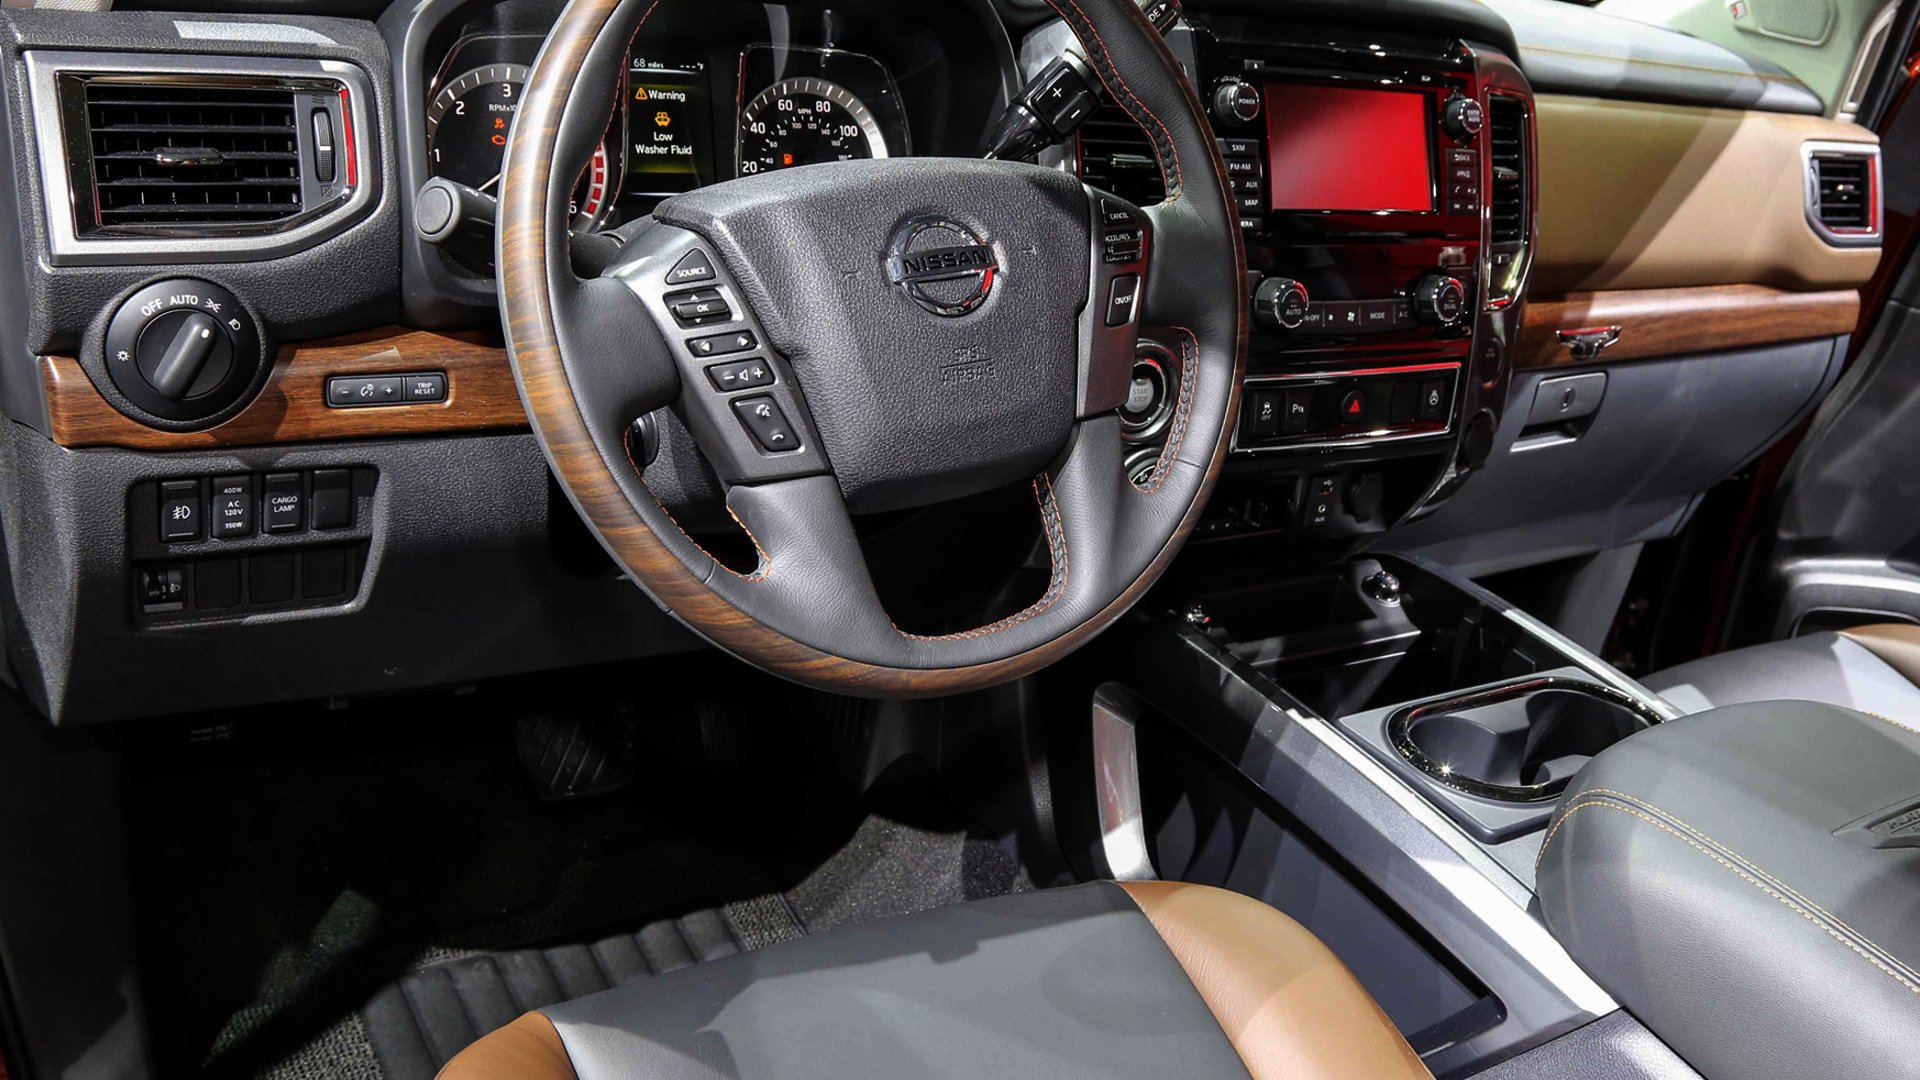 New 2019 Nissan Armada Interior Design